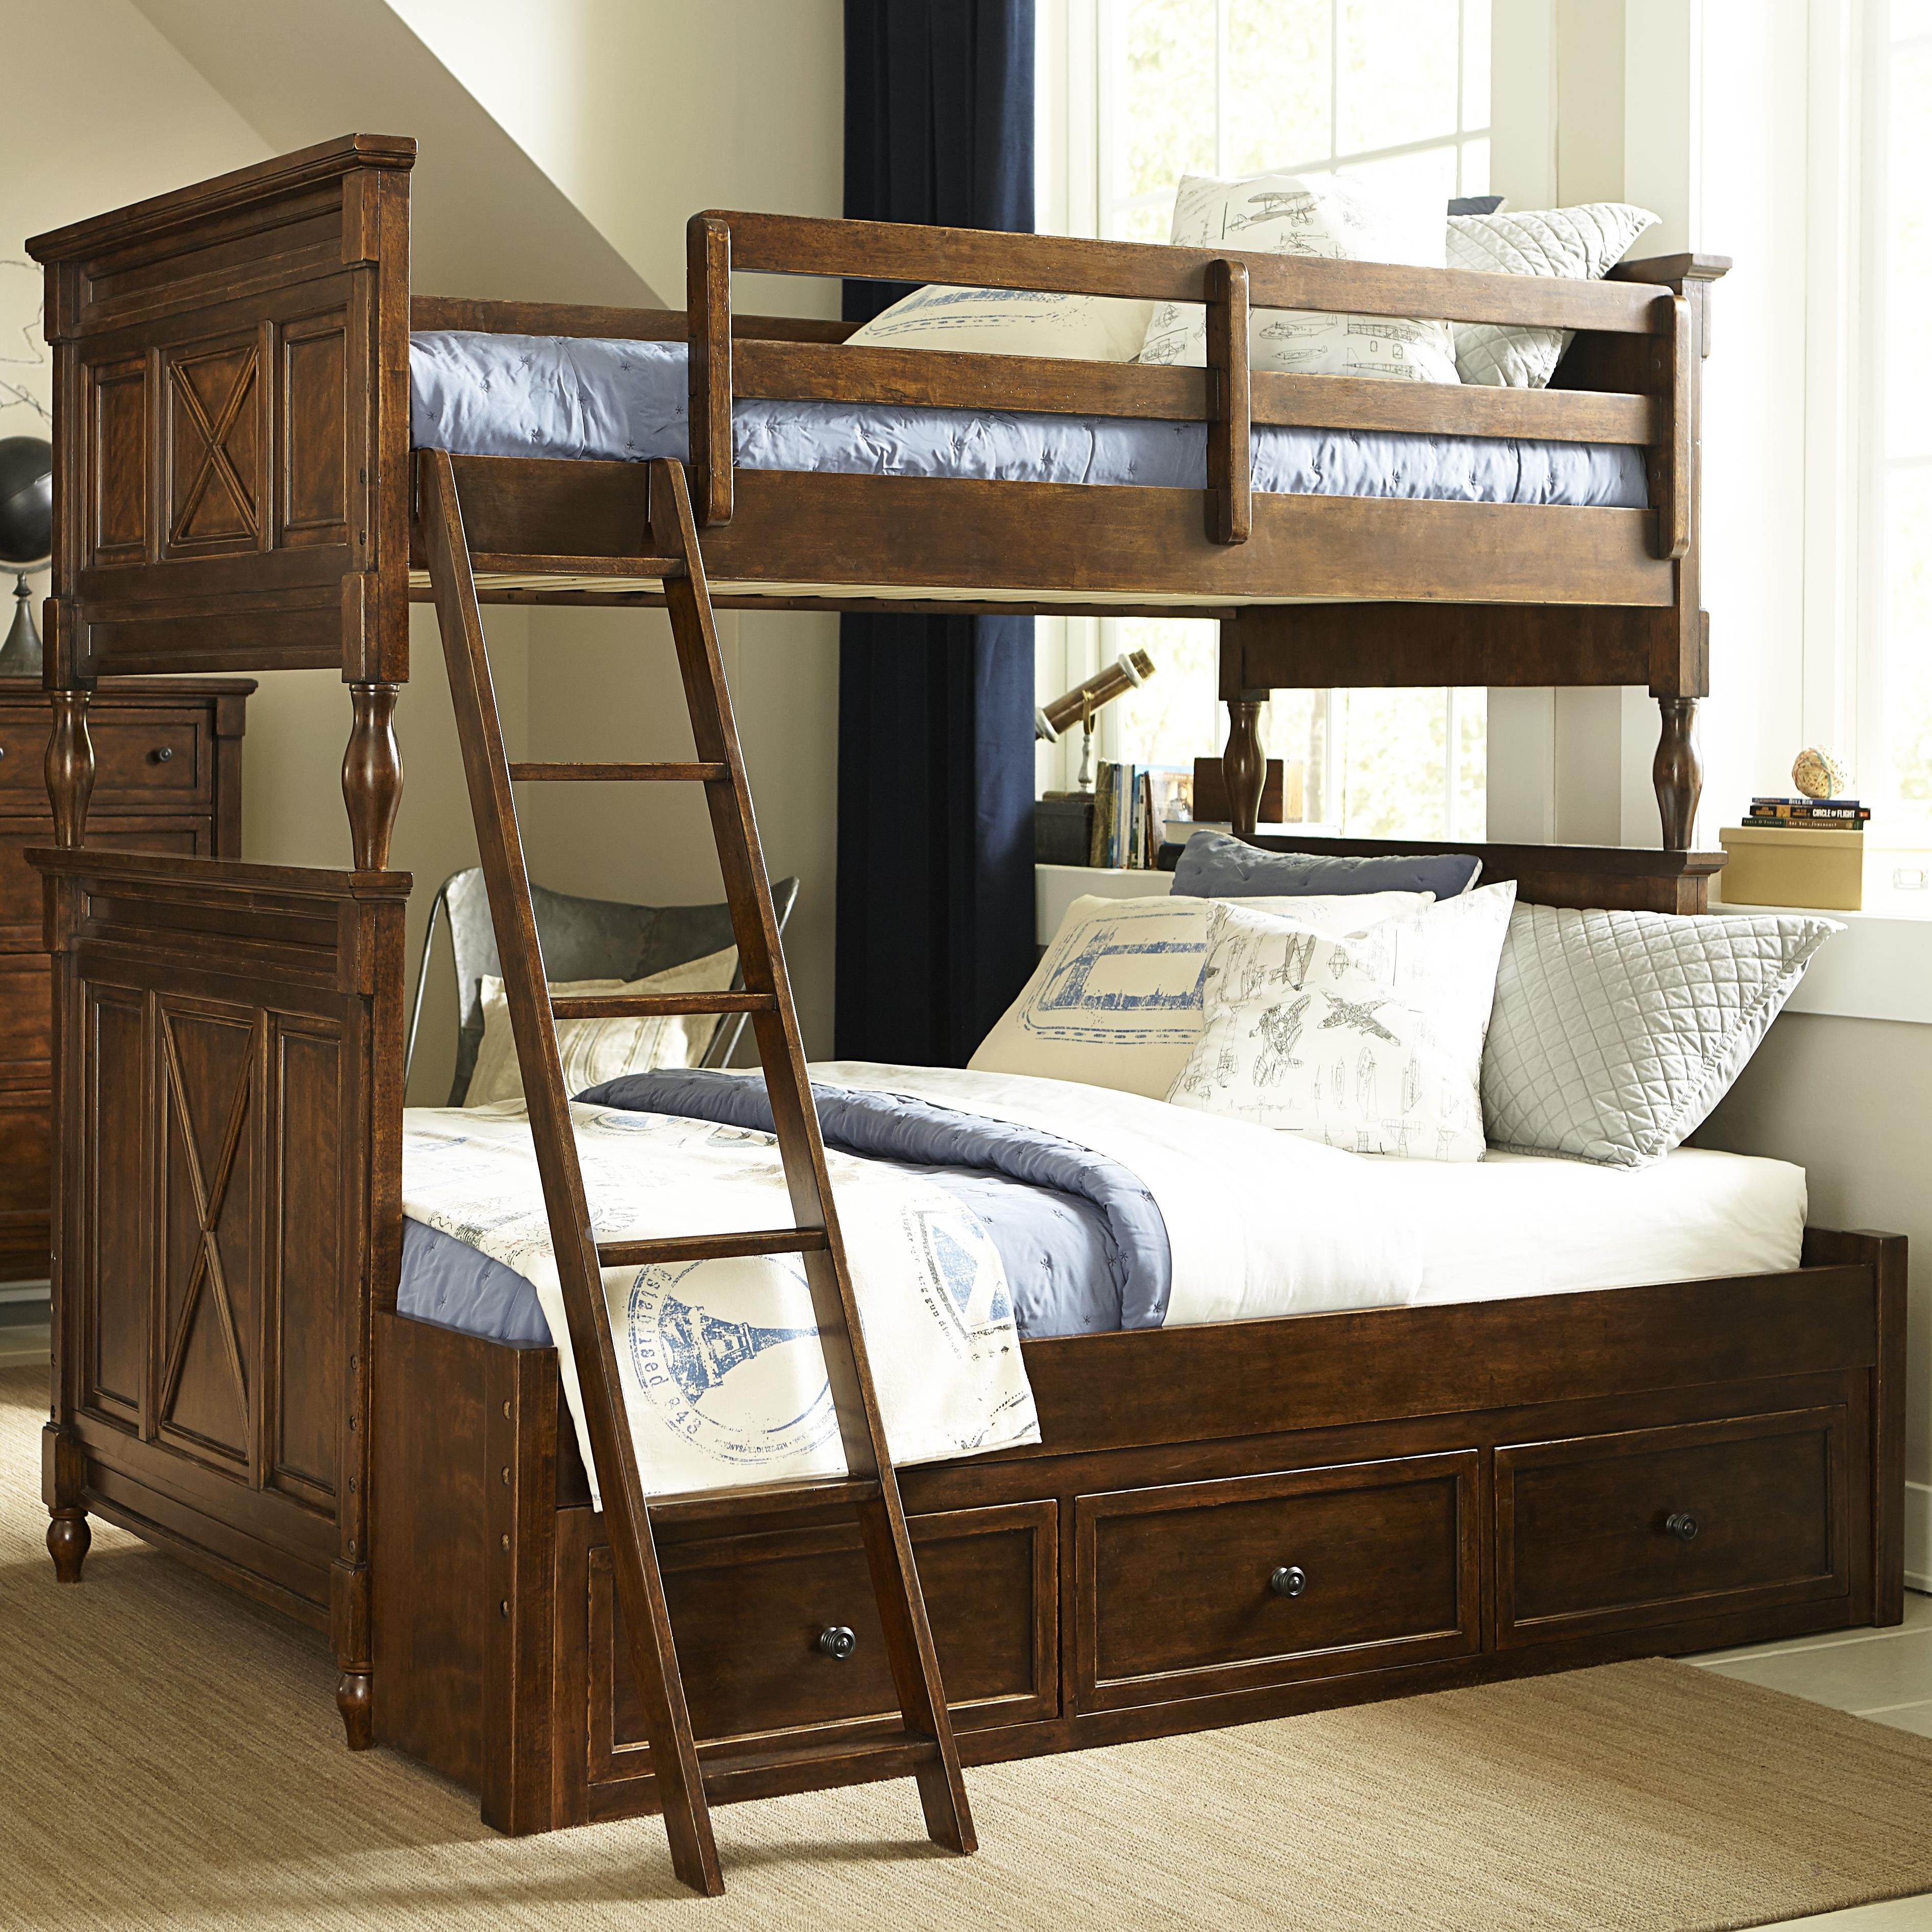 Legacy Classic Kids Big Sur by Wendy Bellissimo Twin over Full Bunk Bed  - Item Number: 4920-8140K+9300